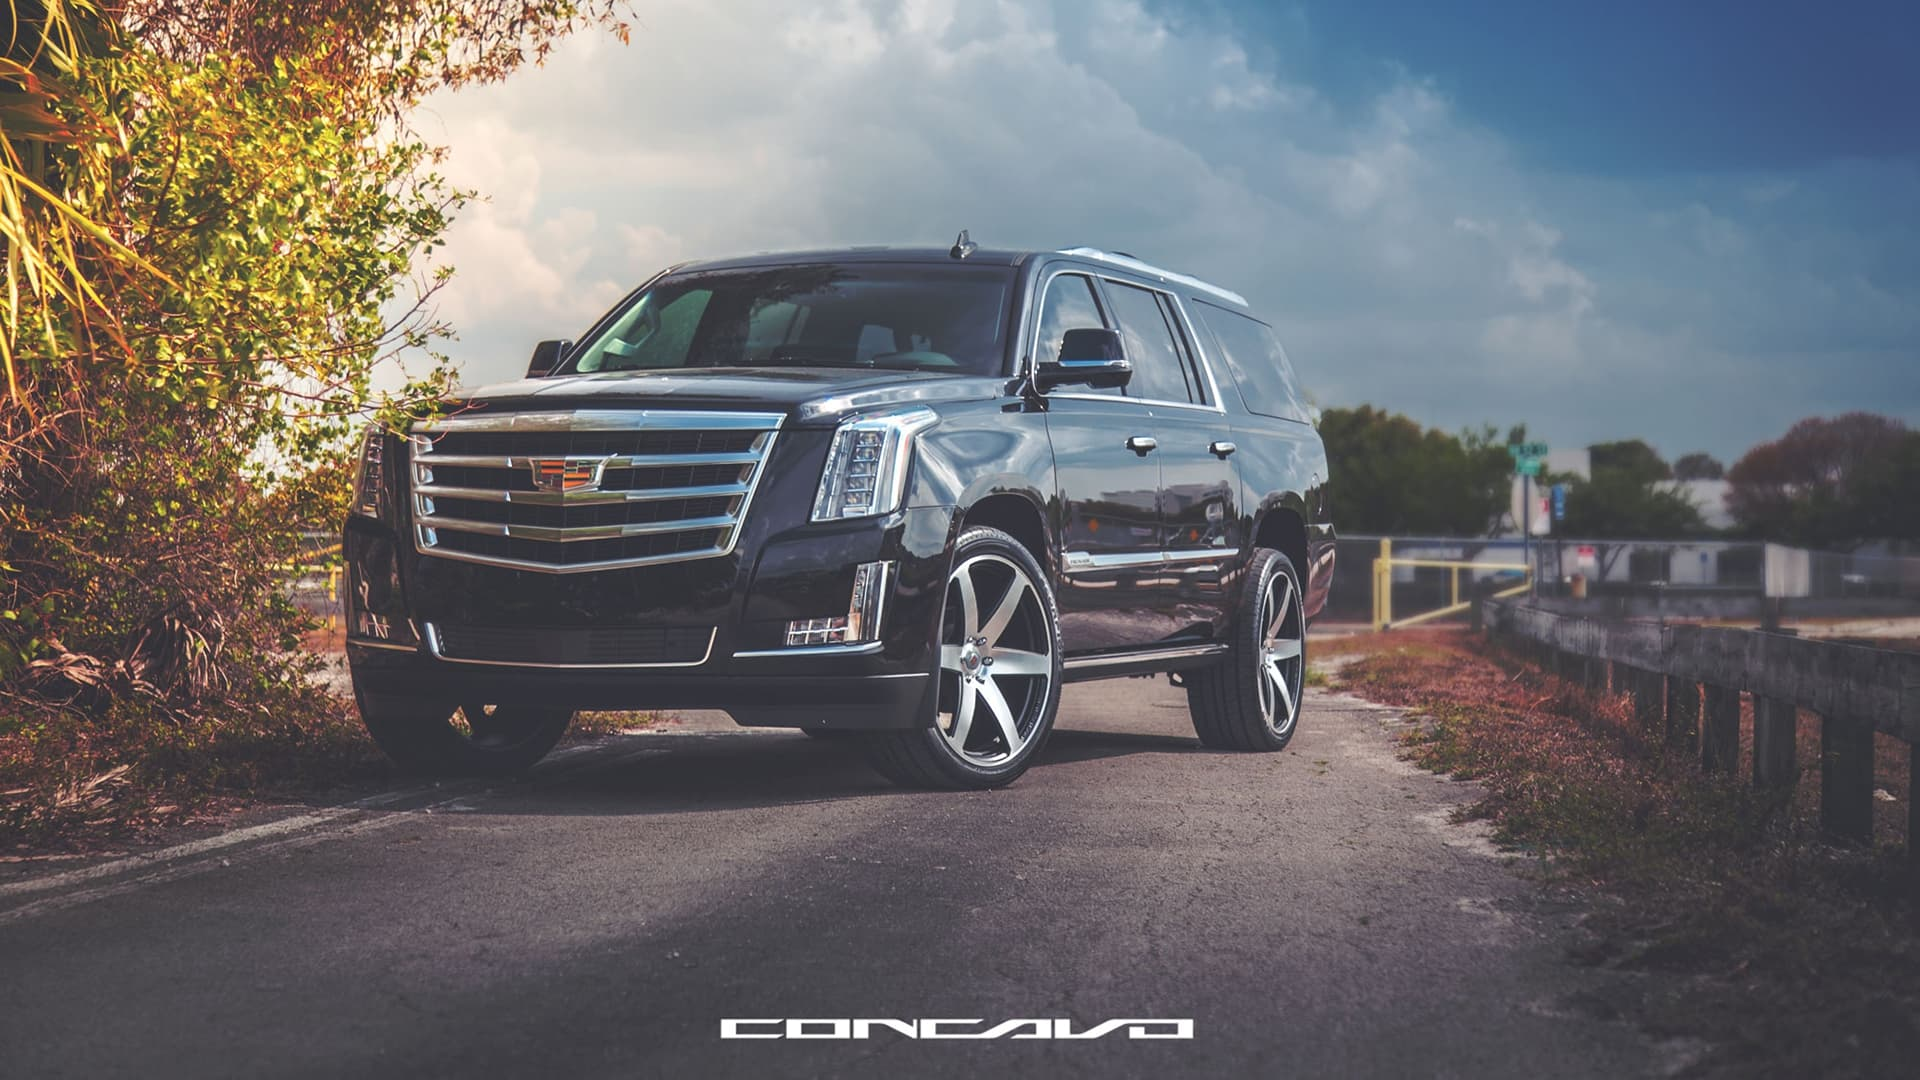 20 Cadillac Escalade Wallpapers Hd